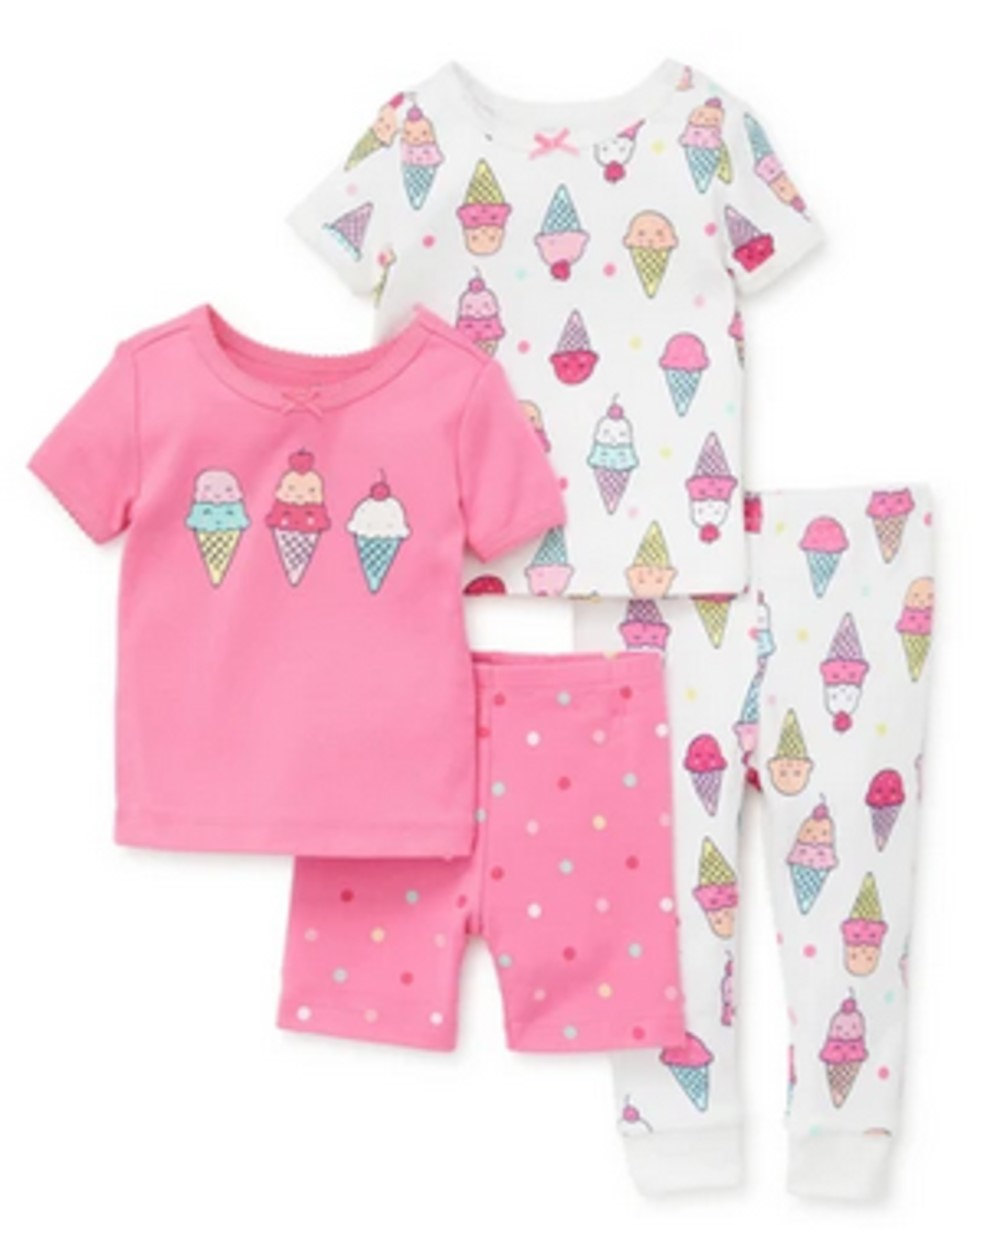 LITTLE ME 4 PIECE ICE CREAM PAJAMA SET NOT FLAME RESISTANT